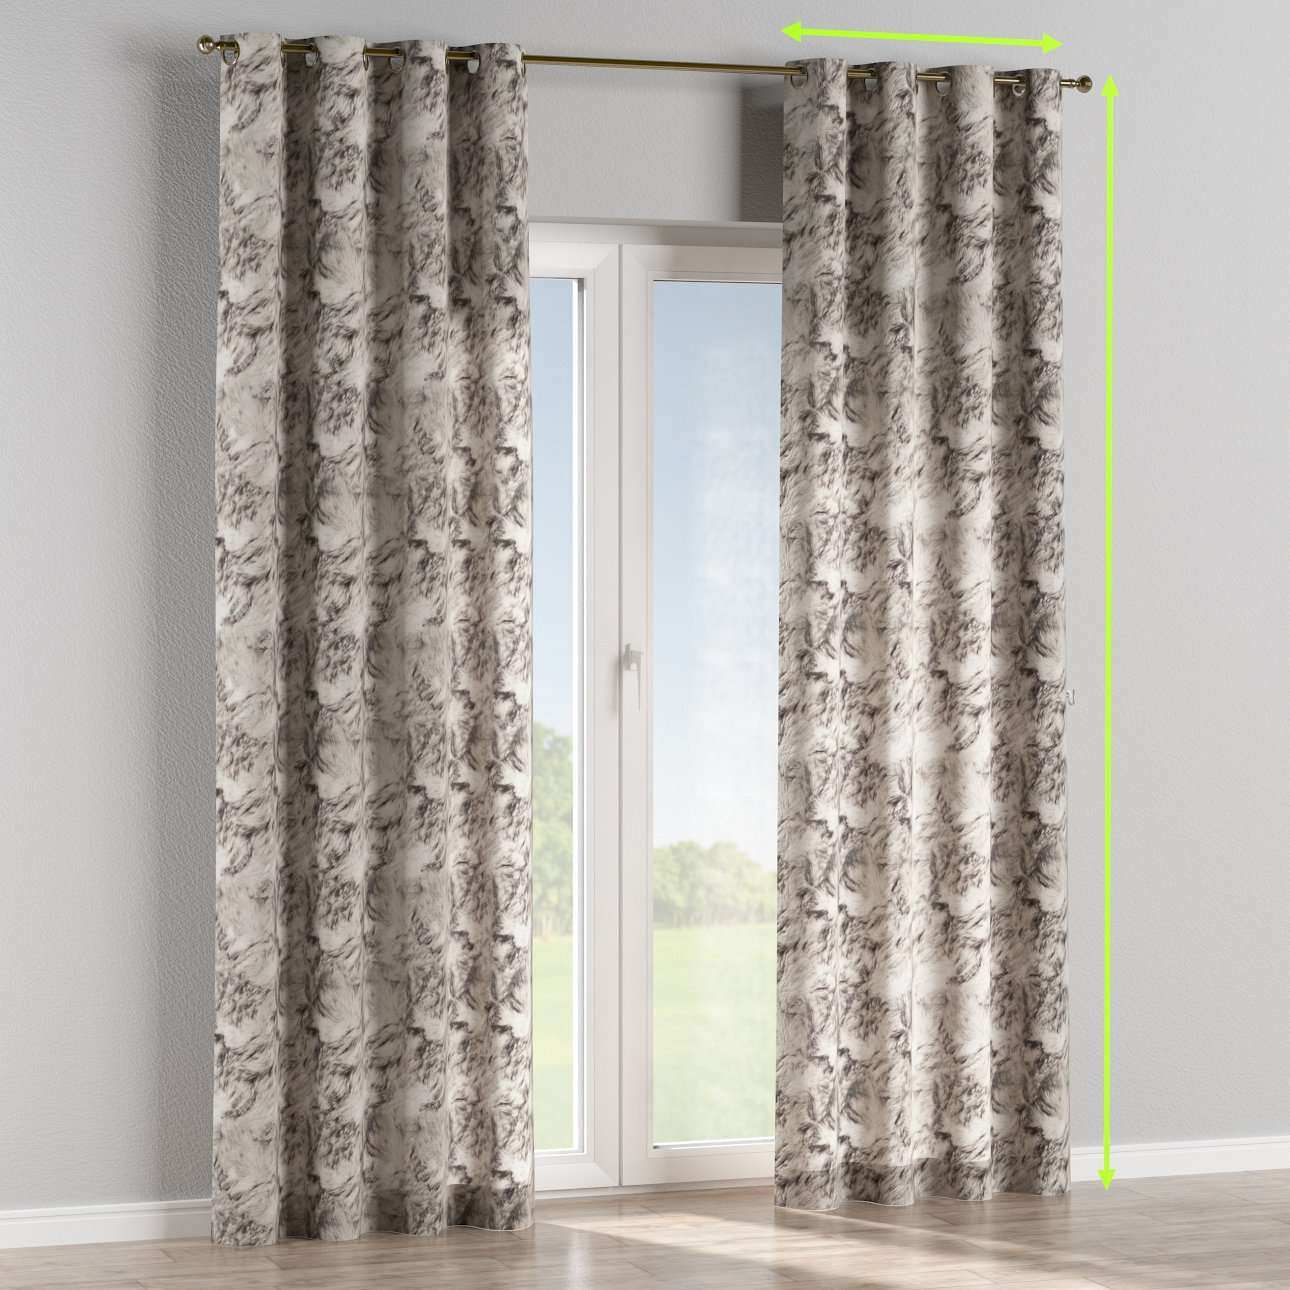 Eyelet curtains in collection Freestyle, fabric: 140-82